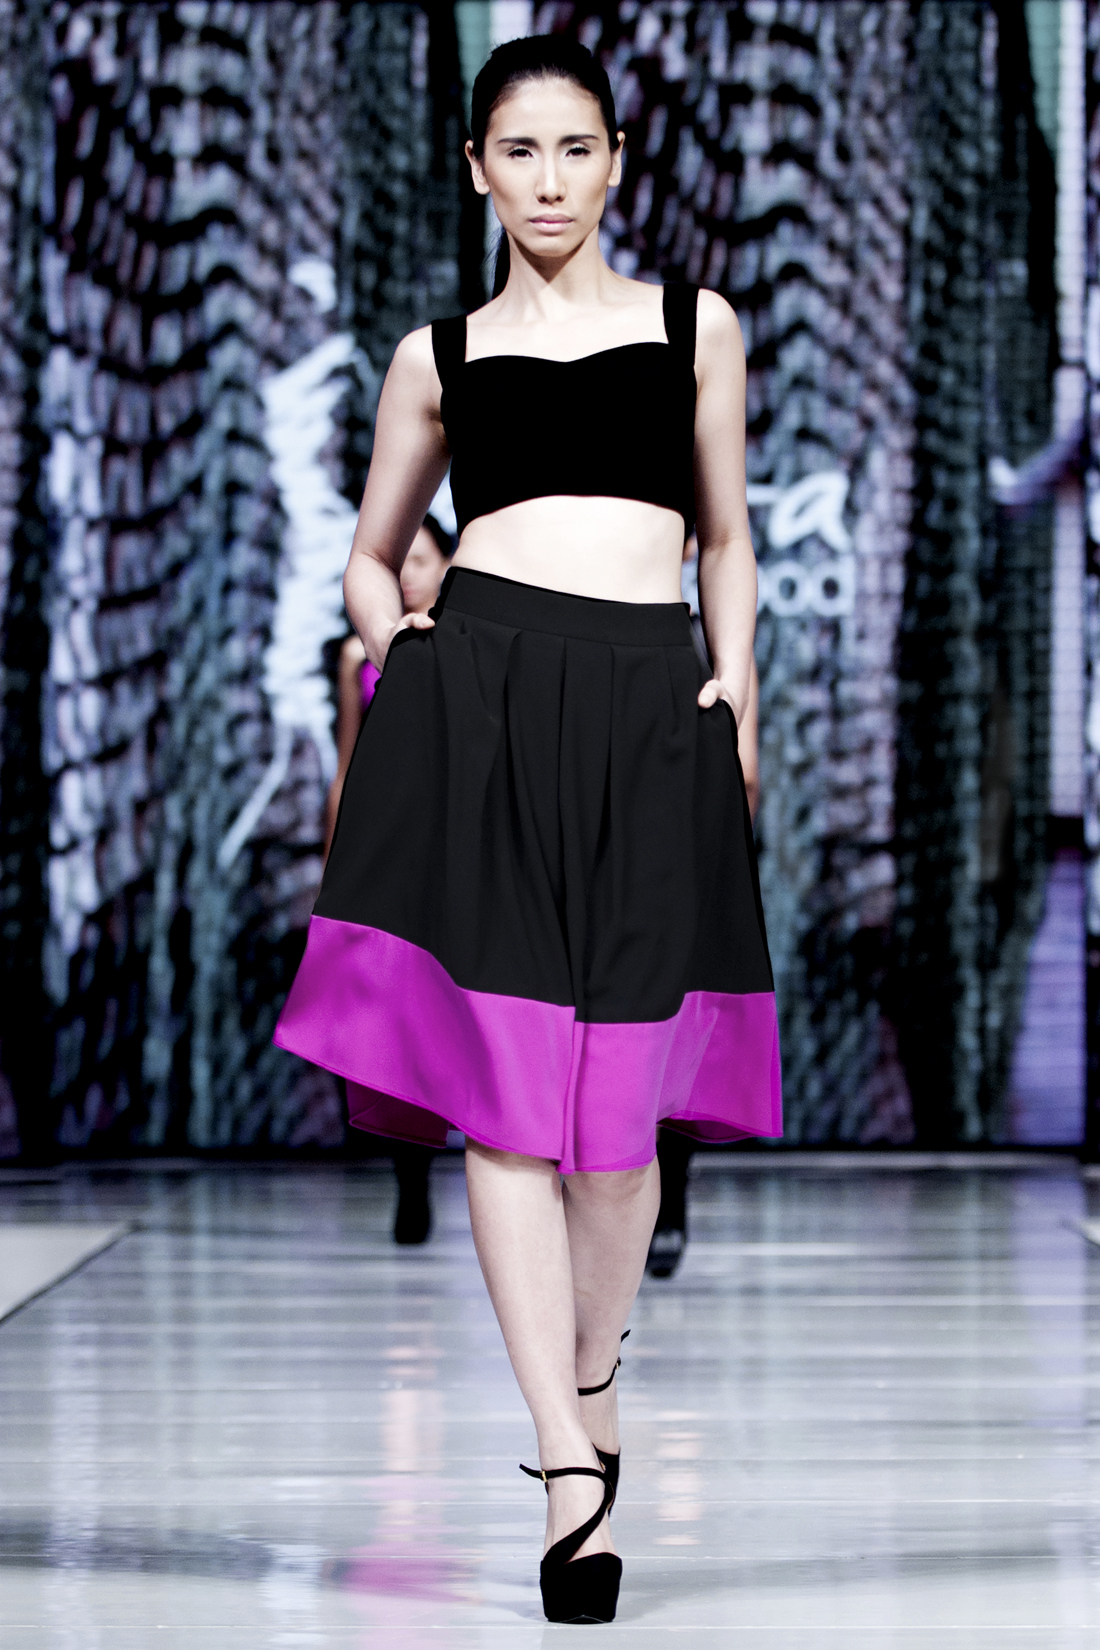 sr-vol01-fergie crop top-simone skirt.jpg